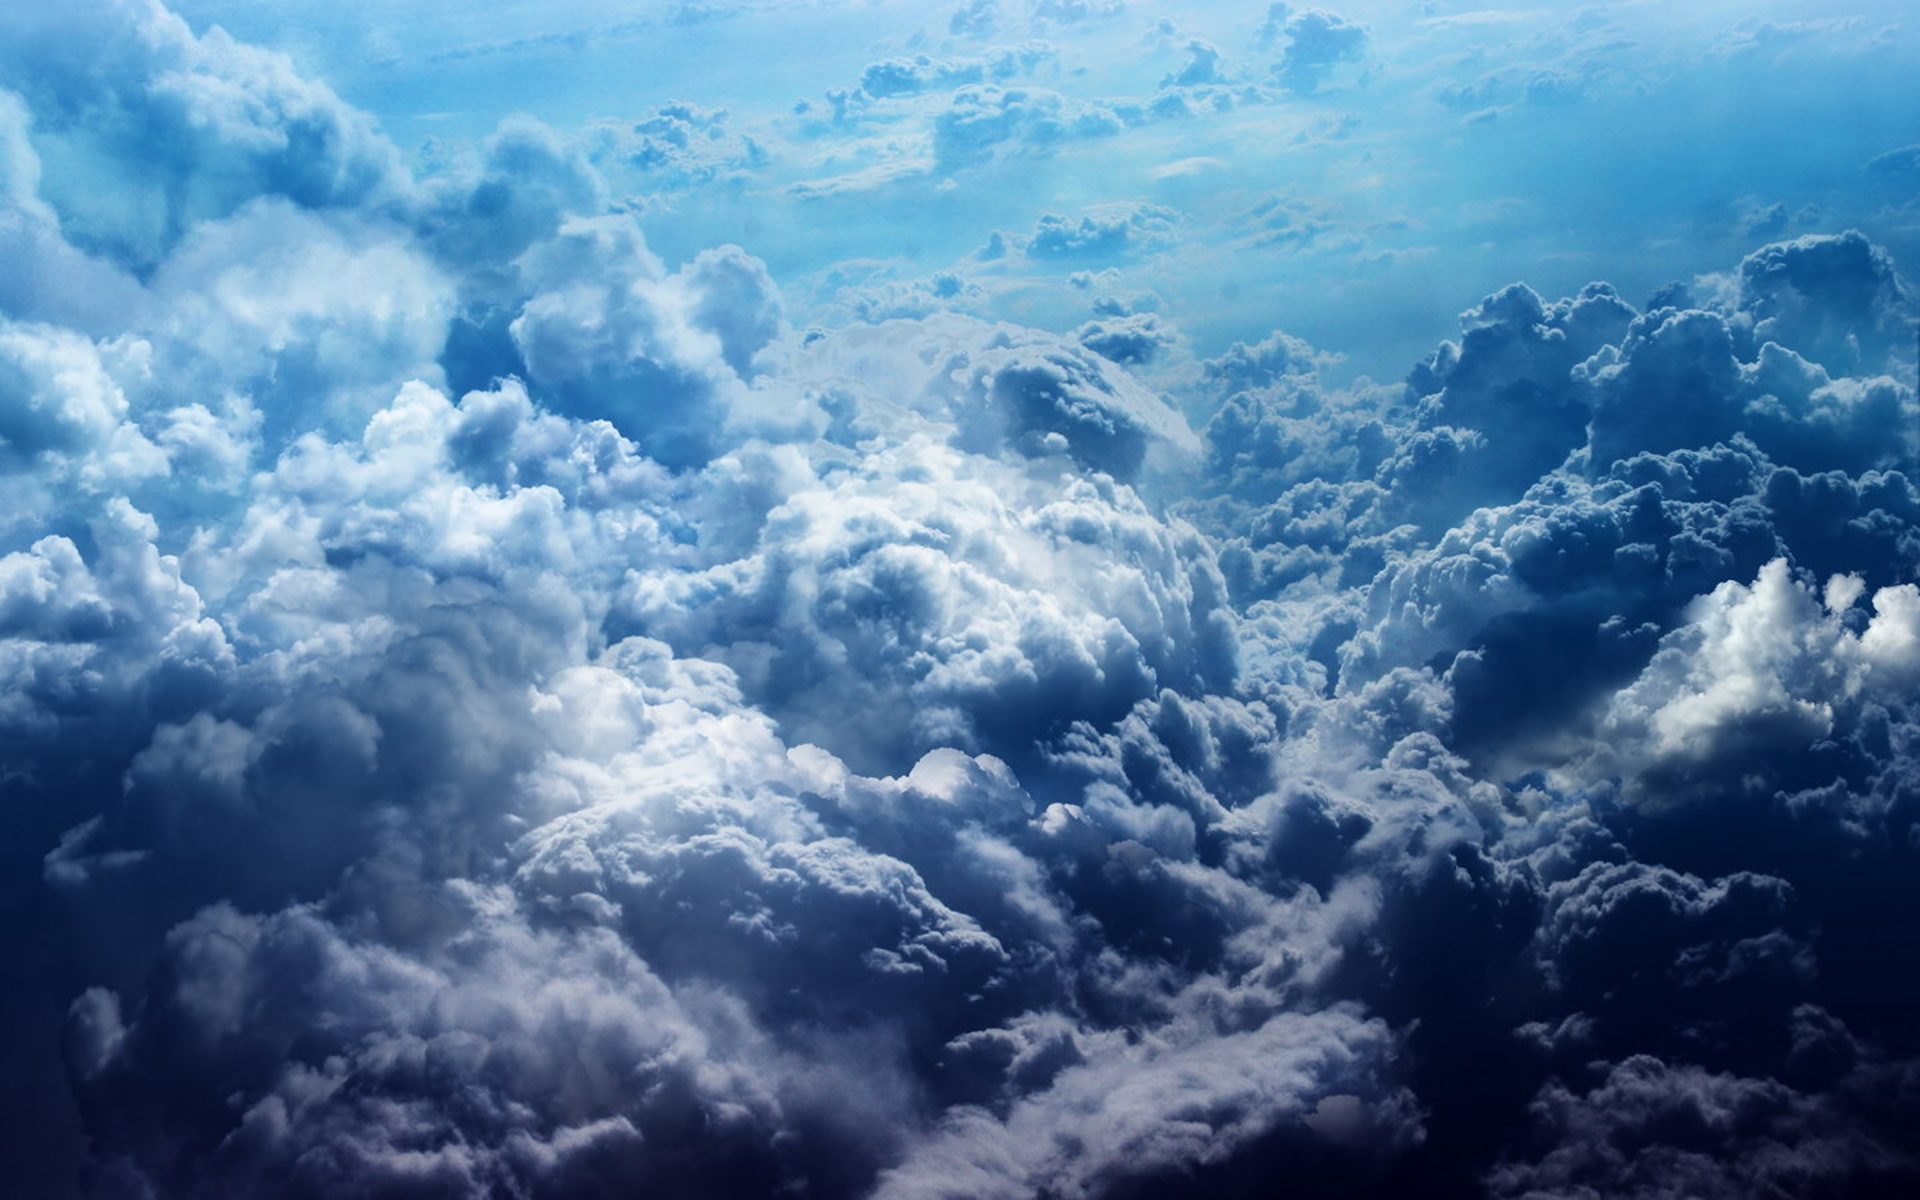 HD Wallpapers Cloud Free. - Cloud HD PNG - PNG HD Clouds